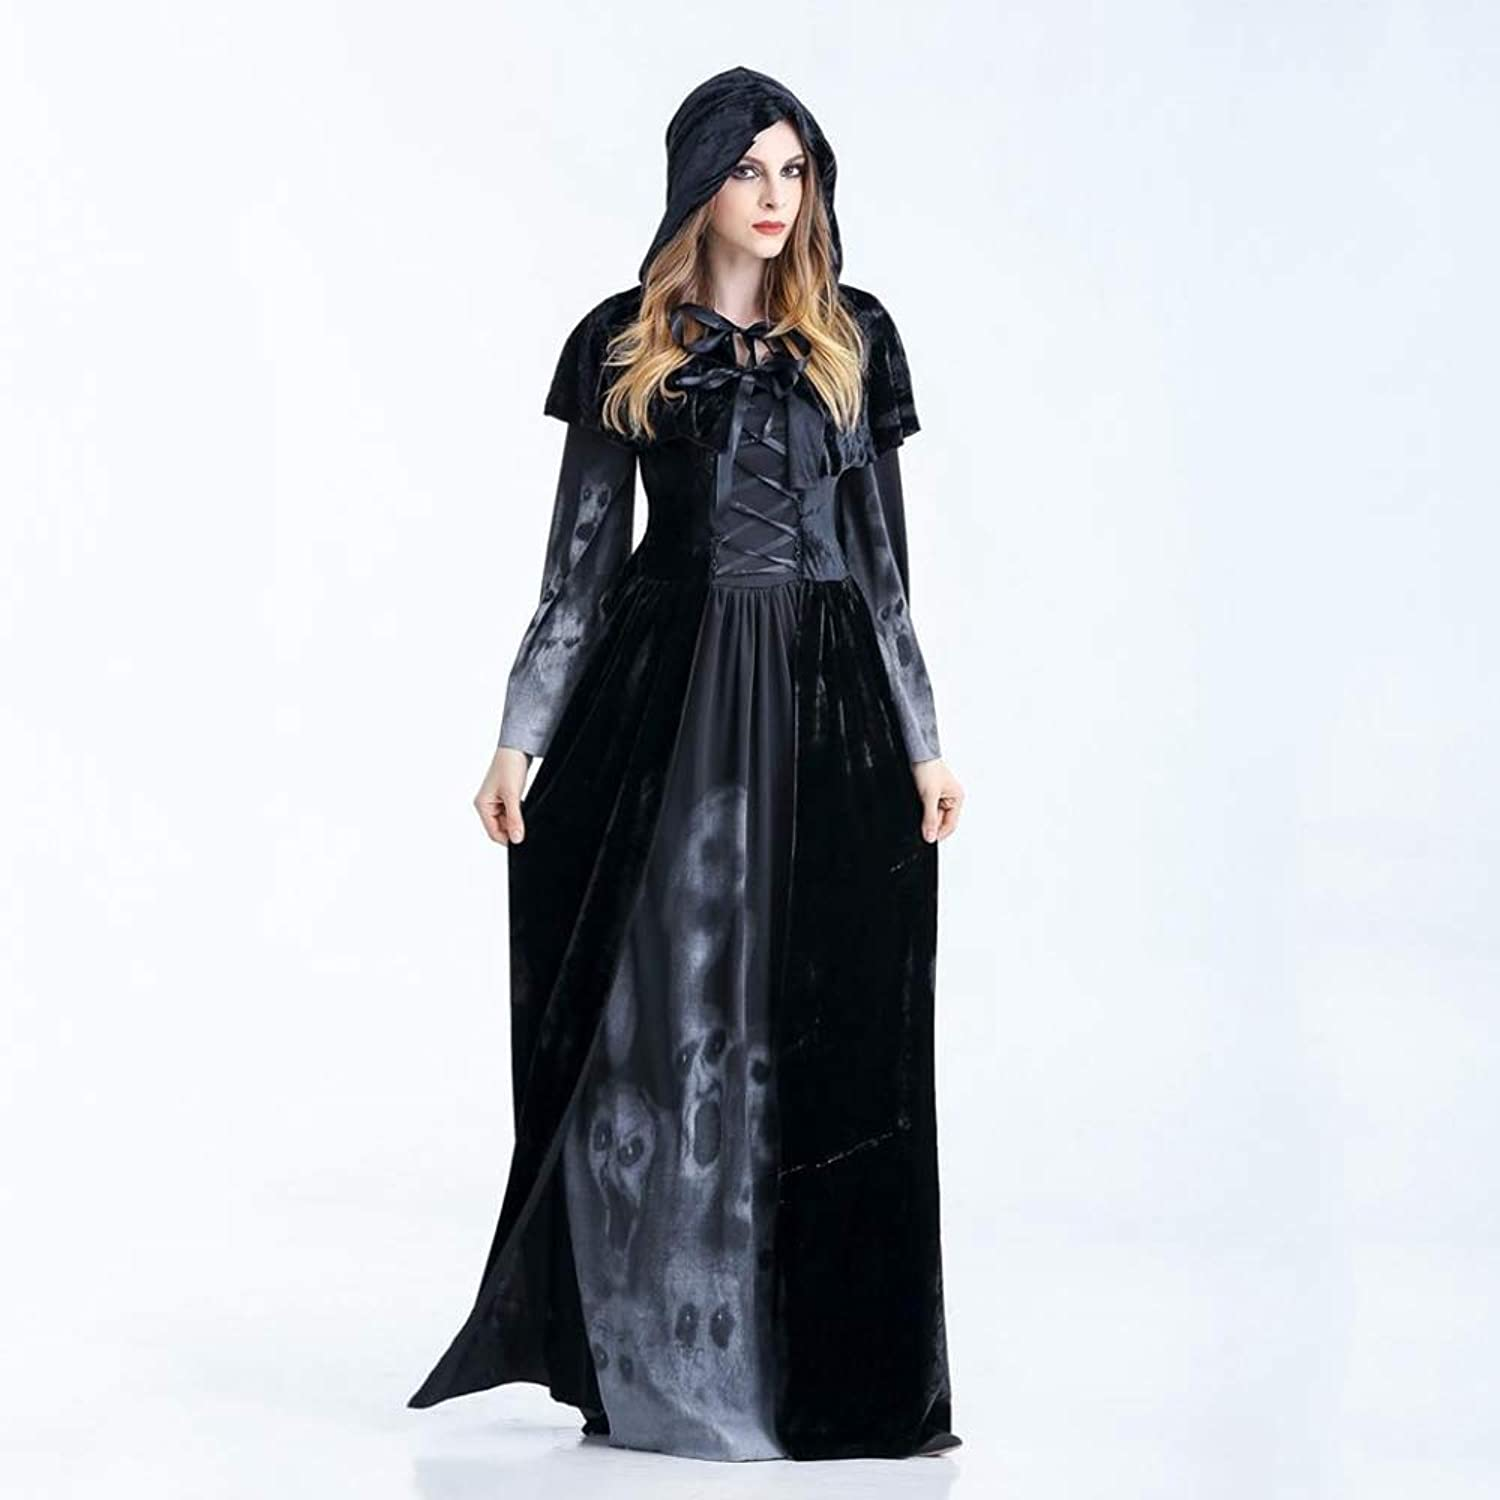 Olydmsky Halloween Costumes Women Halloween Witch Costume Demon Witch Vampire Bleach Cosplay Costume